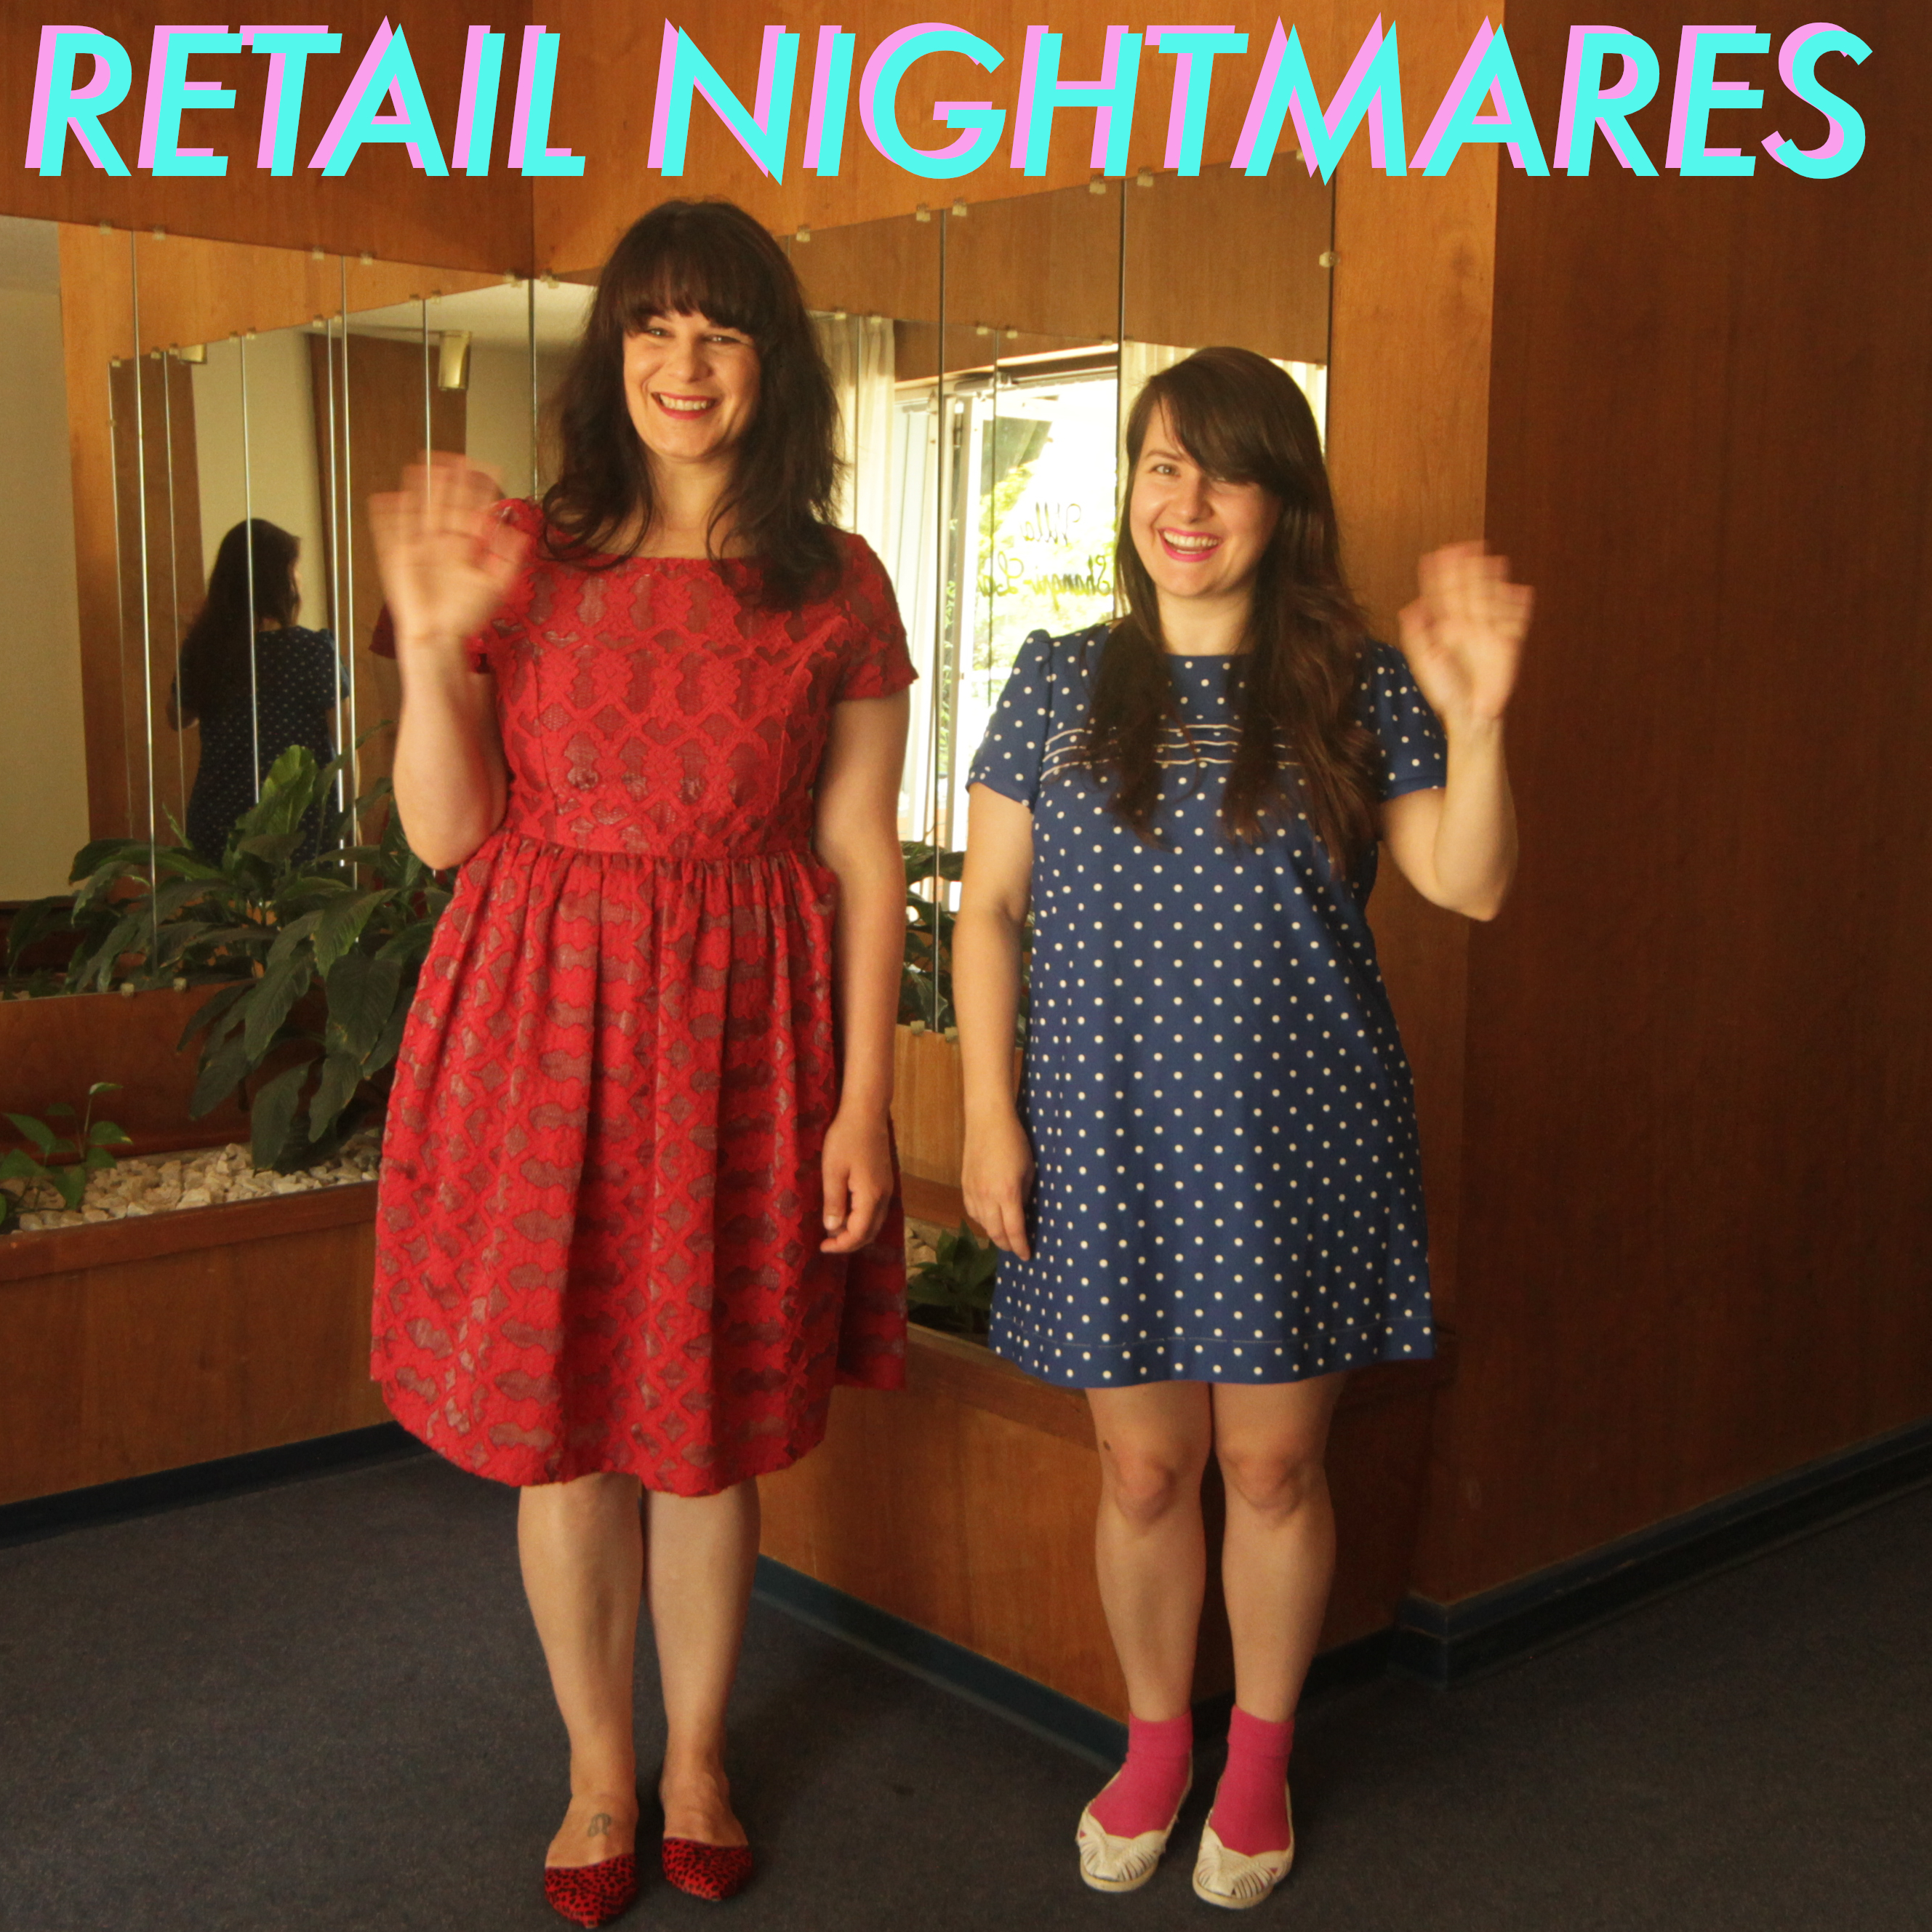 Retail Nightmares